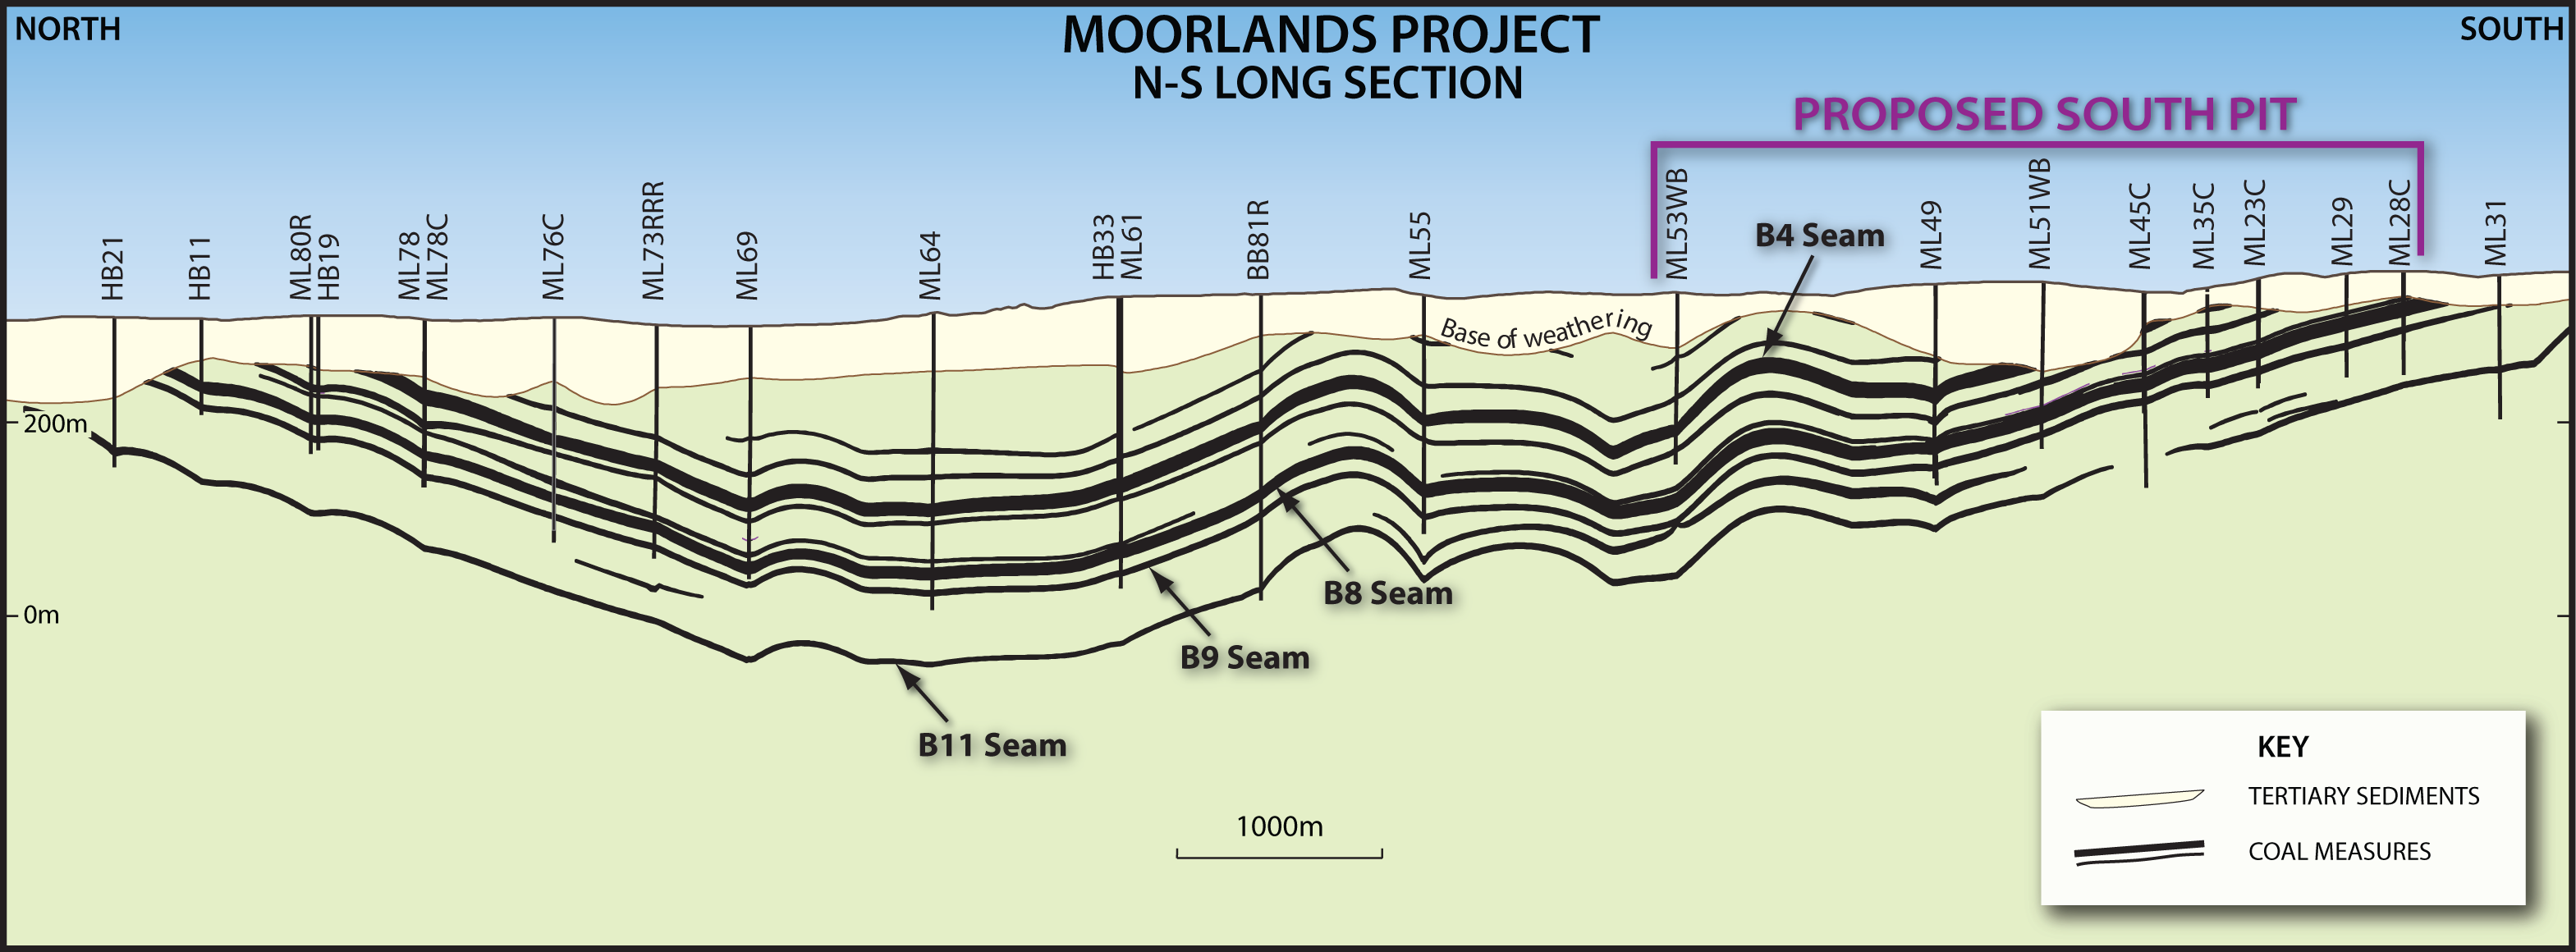 Moorlands Long Section & JORC Resources